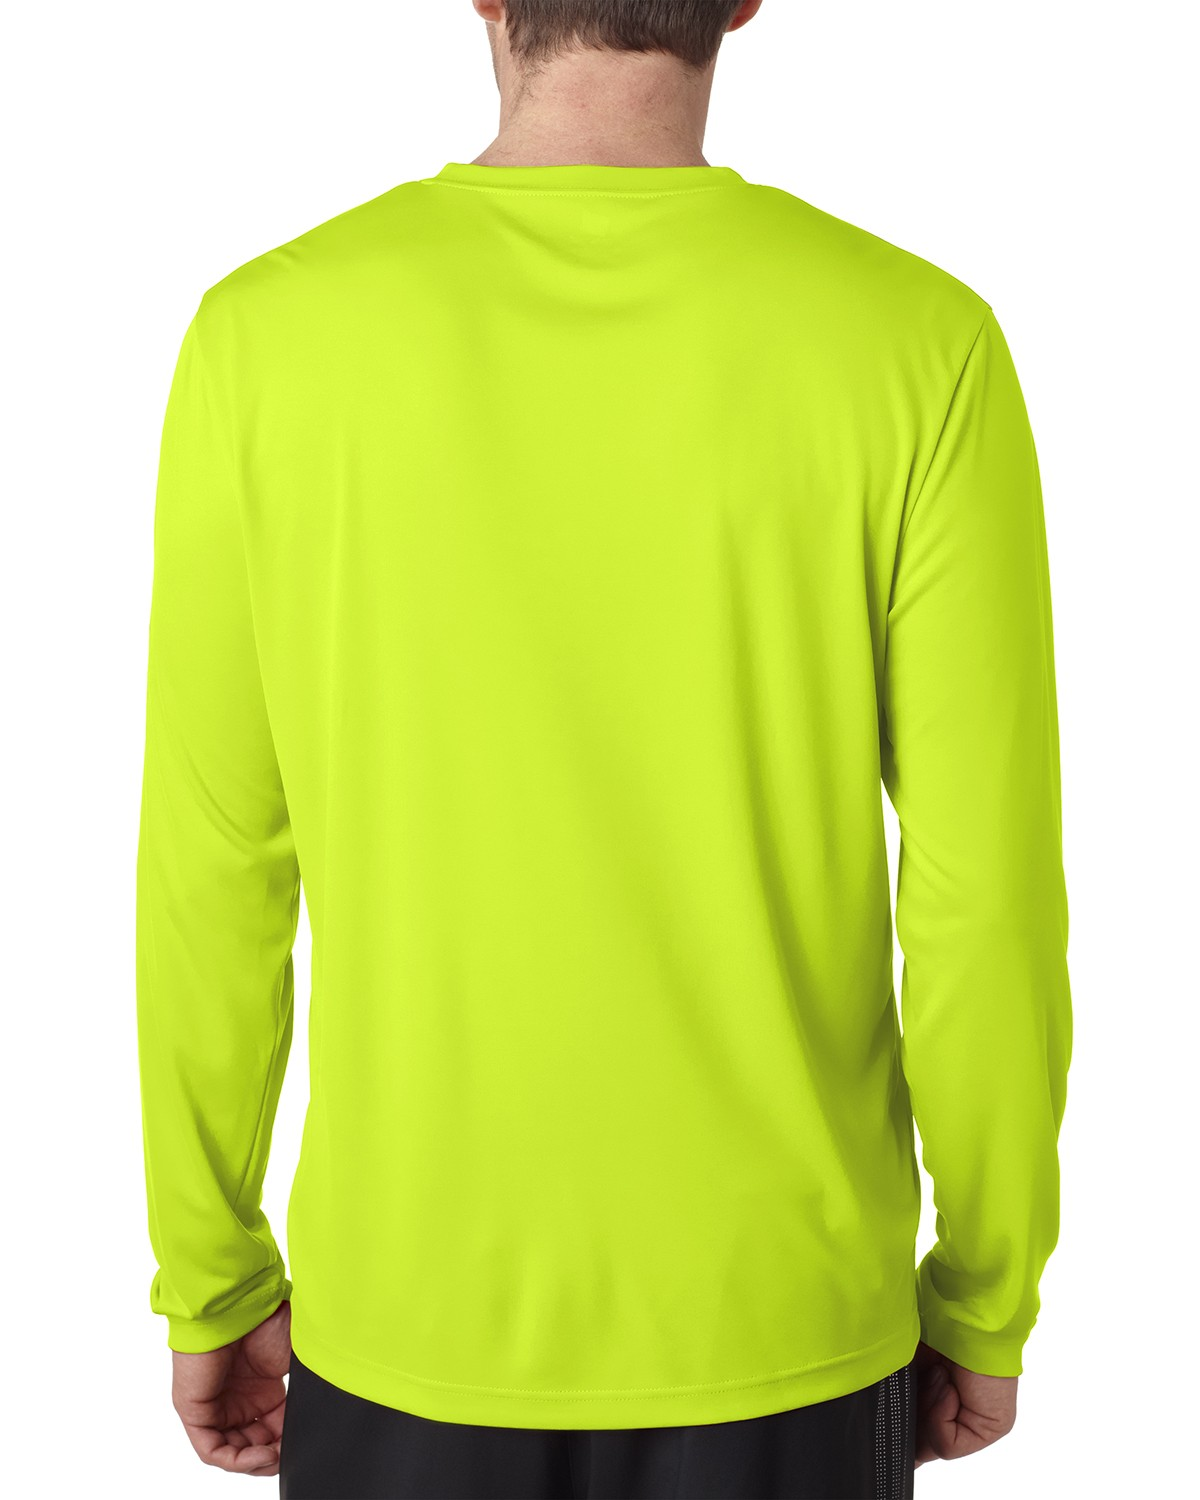 482L Hanes SAFETY GREEN